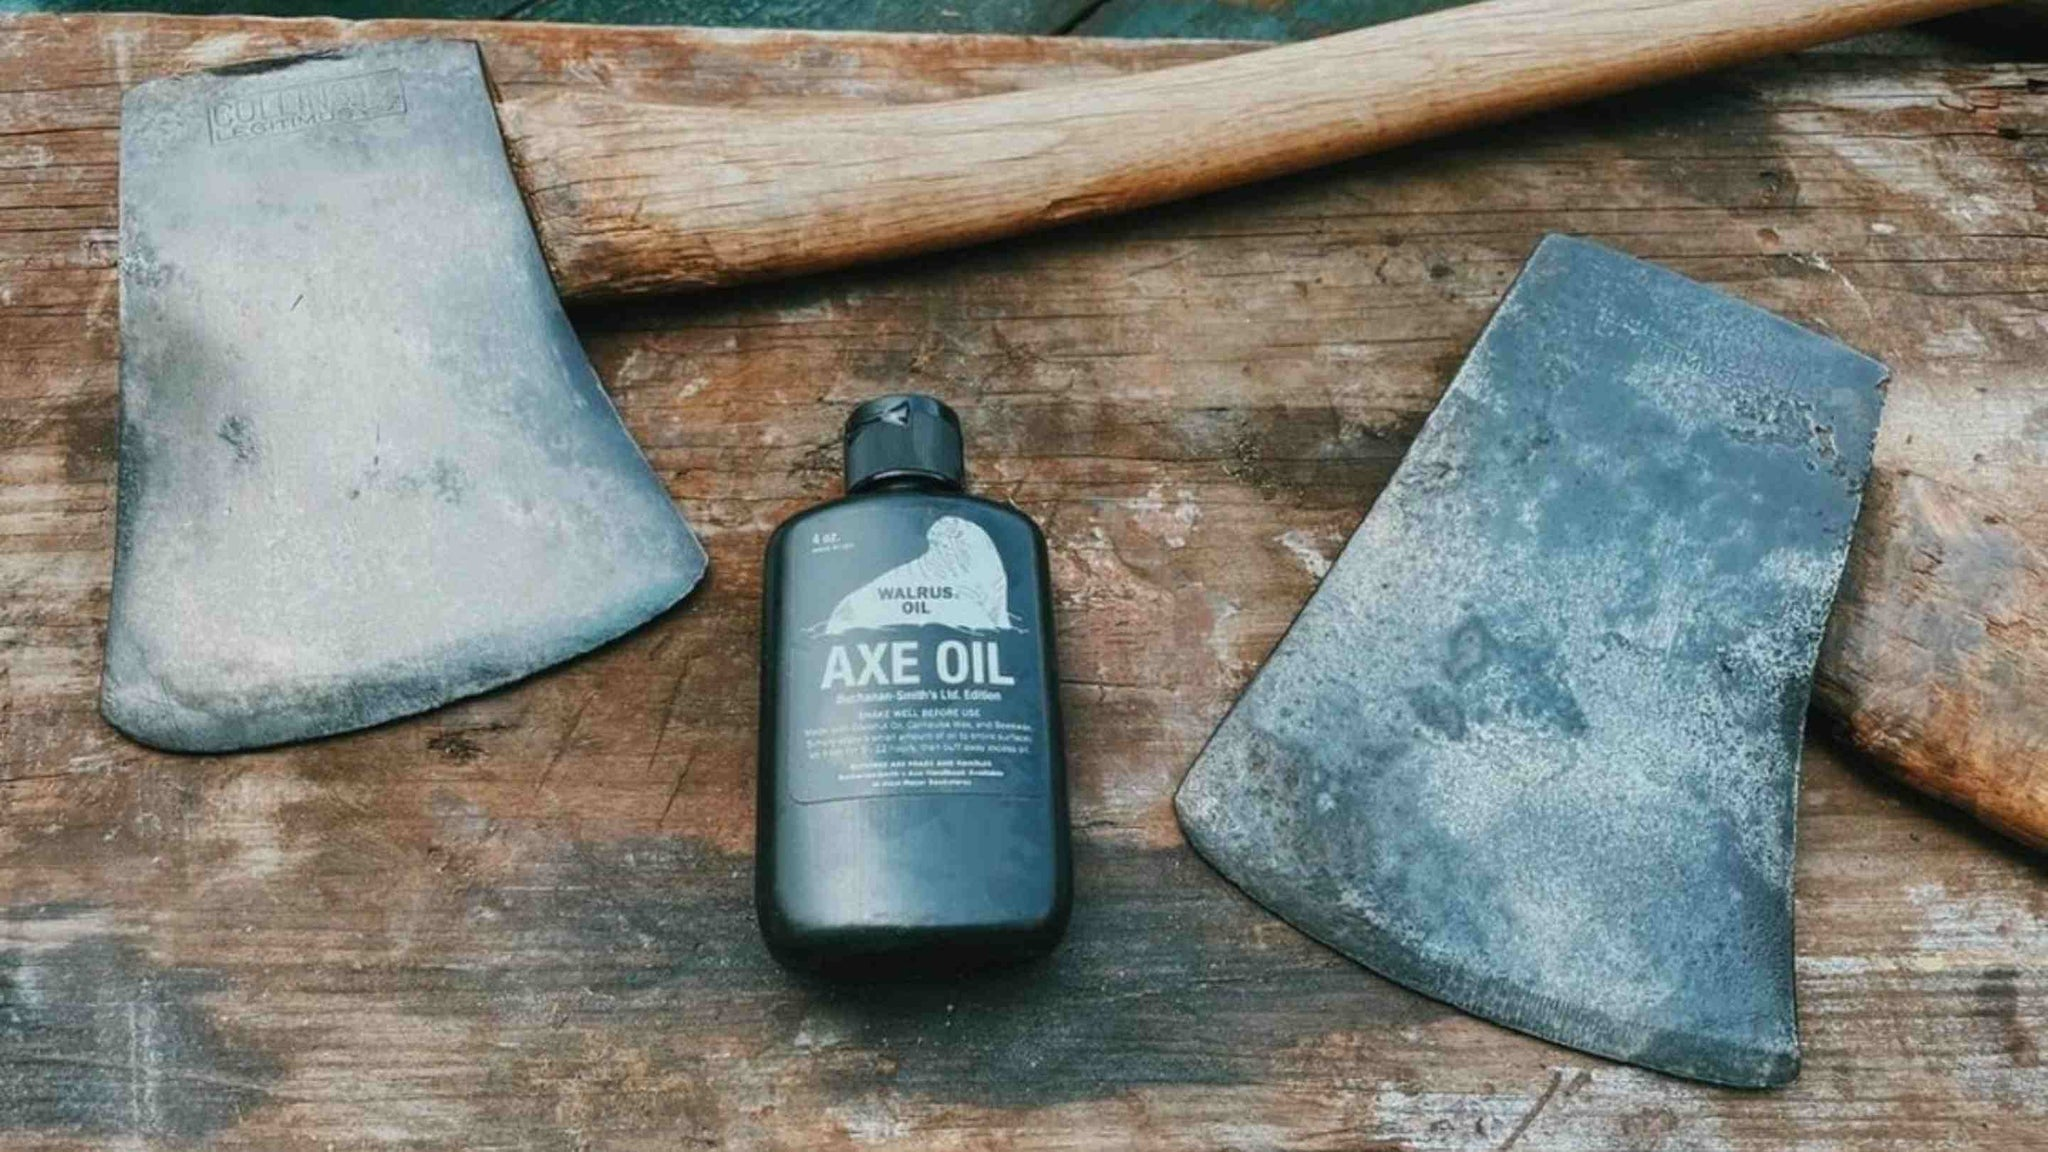 axe oil and two axes